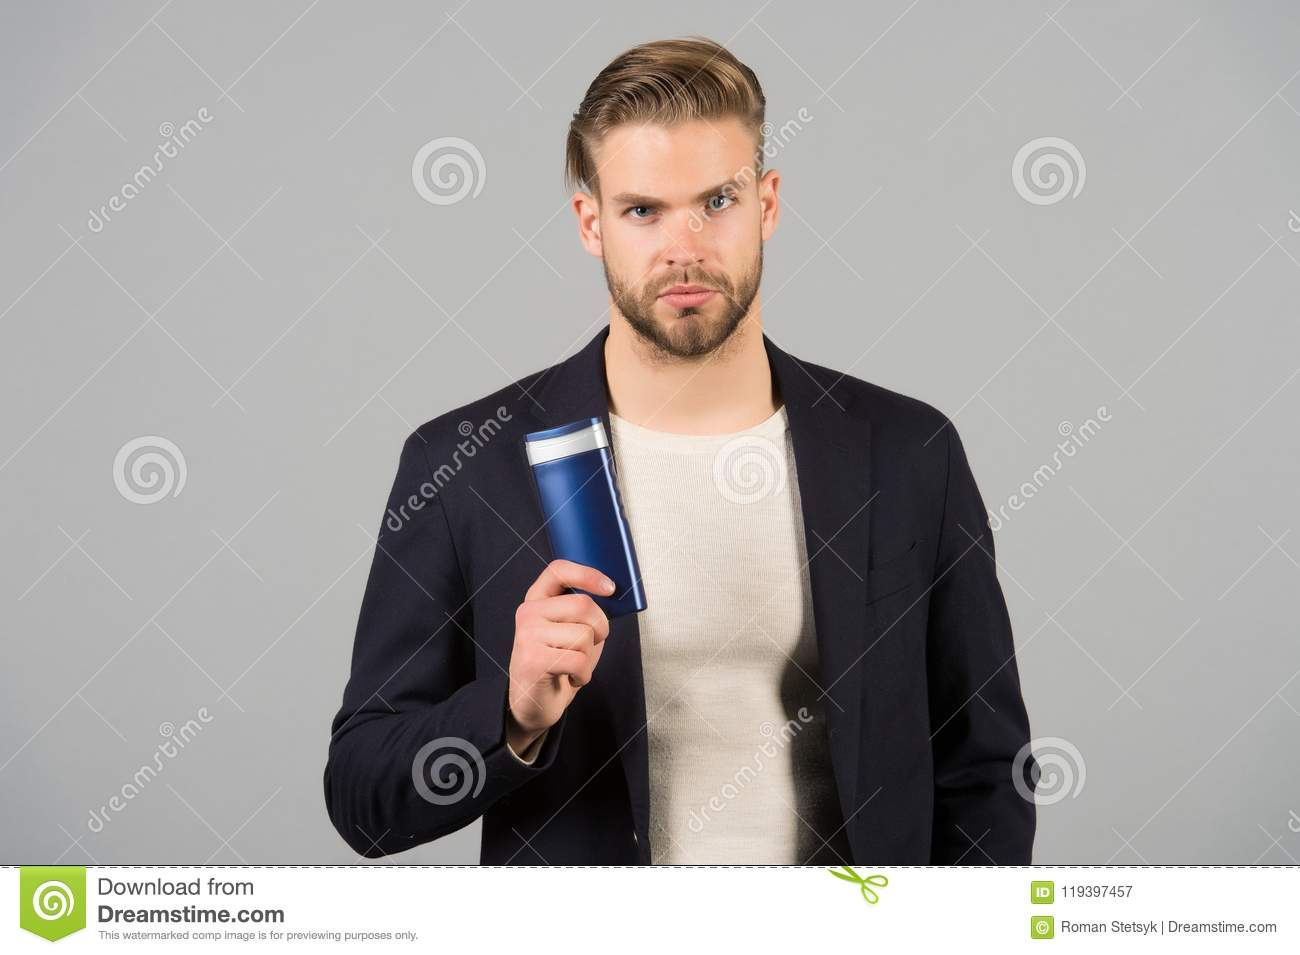 Confident in hair care product. Man stylish hairstyle holds bottle hygienic product grey background. Switch matte